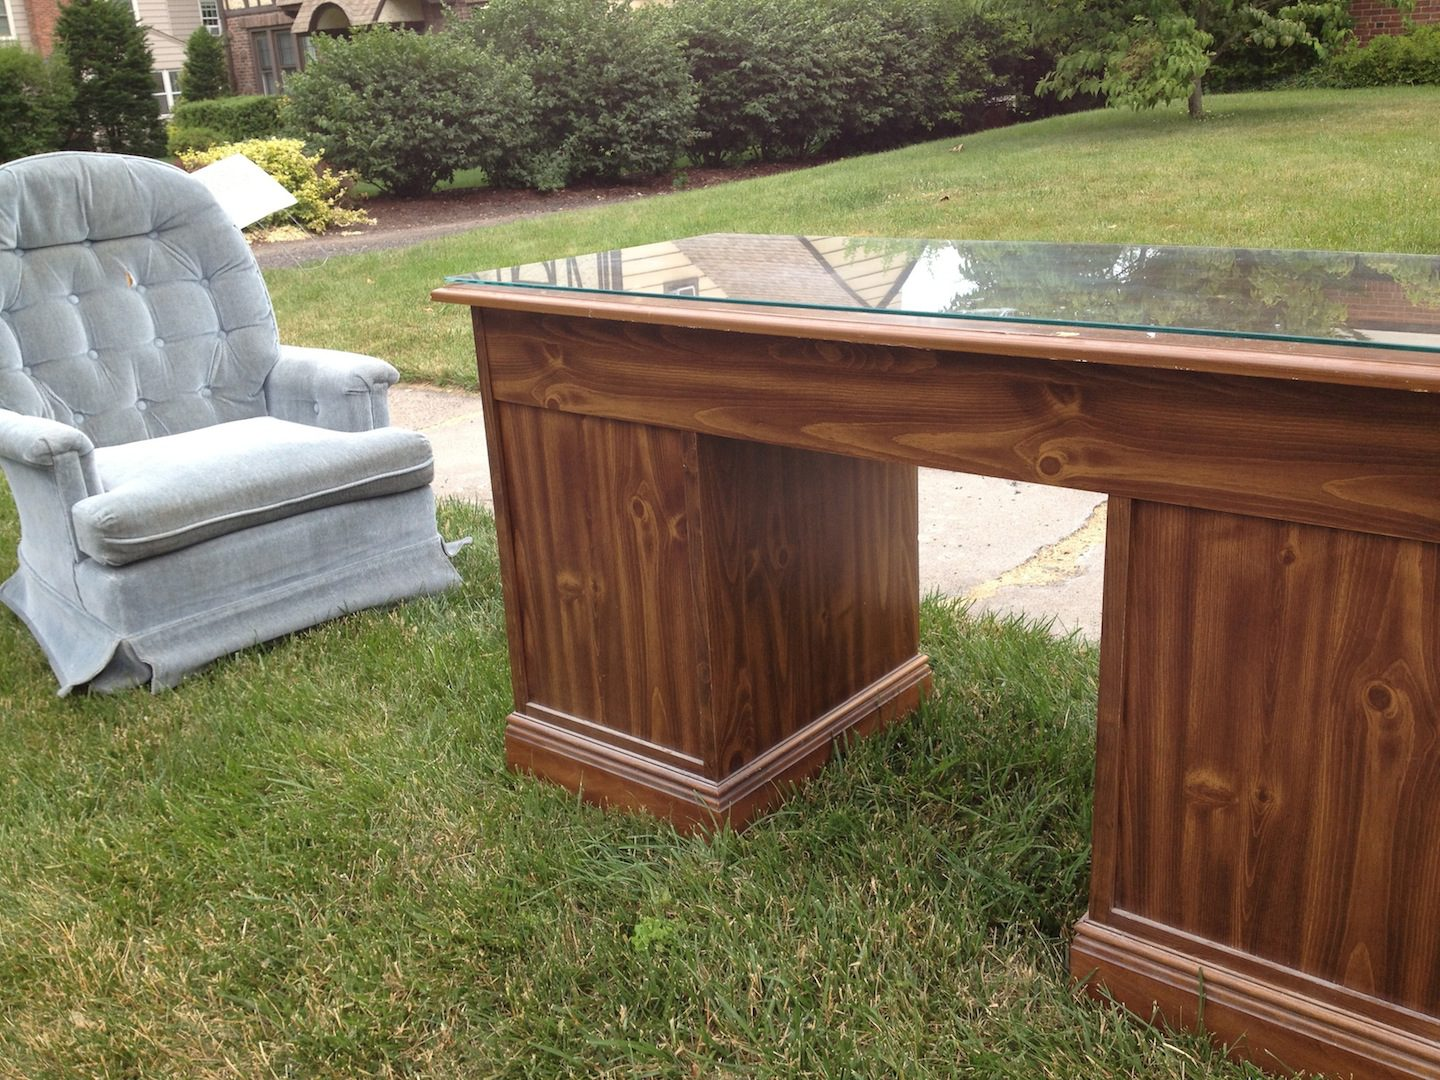 Bulky items like furniture can be picked up at the curb, but you must purchase a permit and schedule collection in advance. Photo credit: Ronni Newton